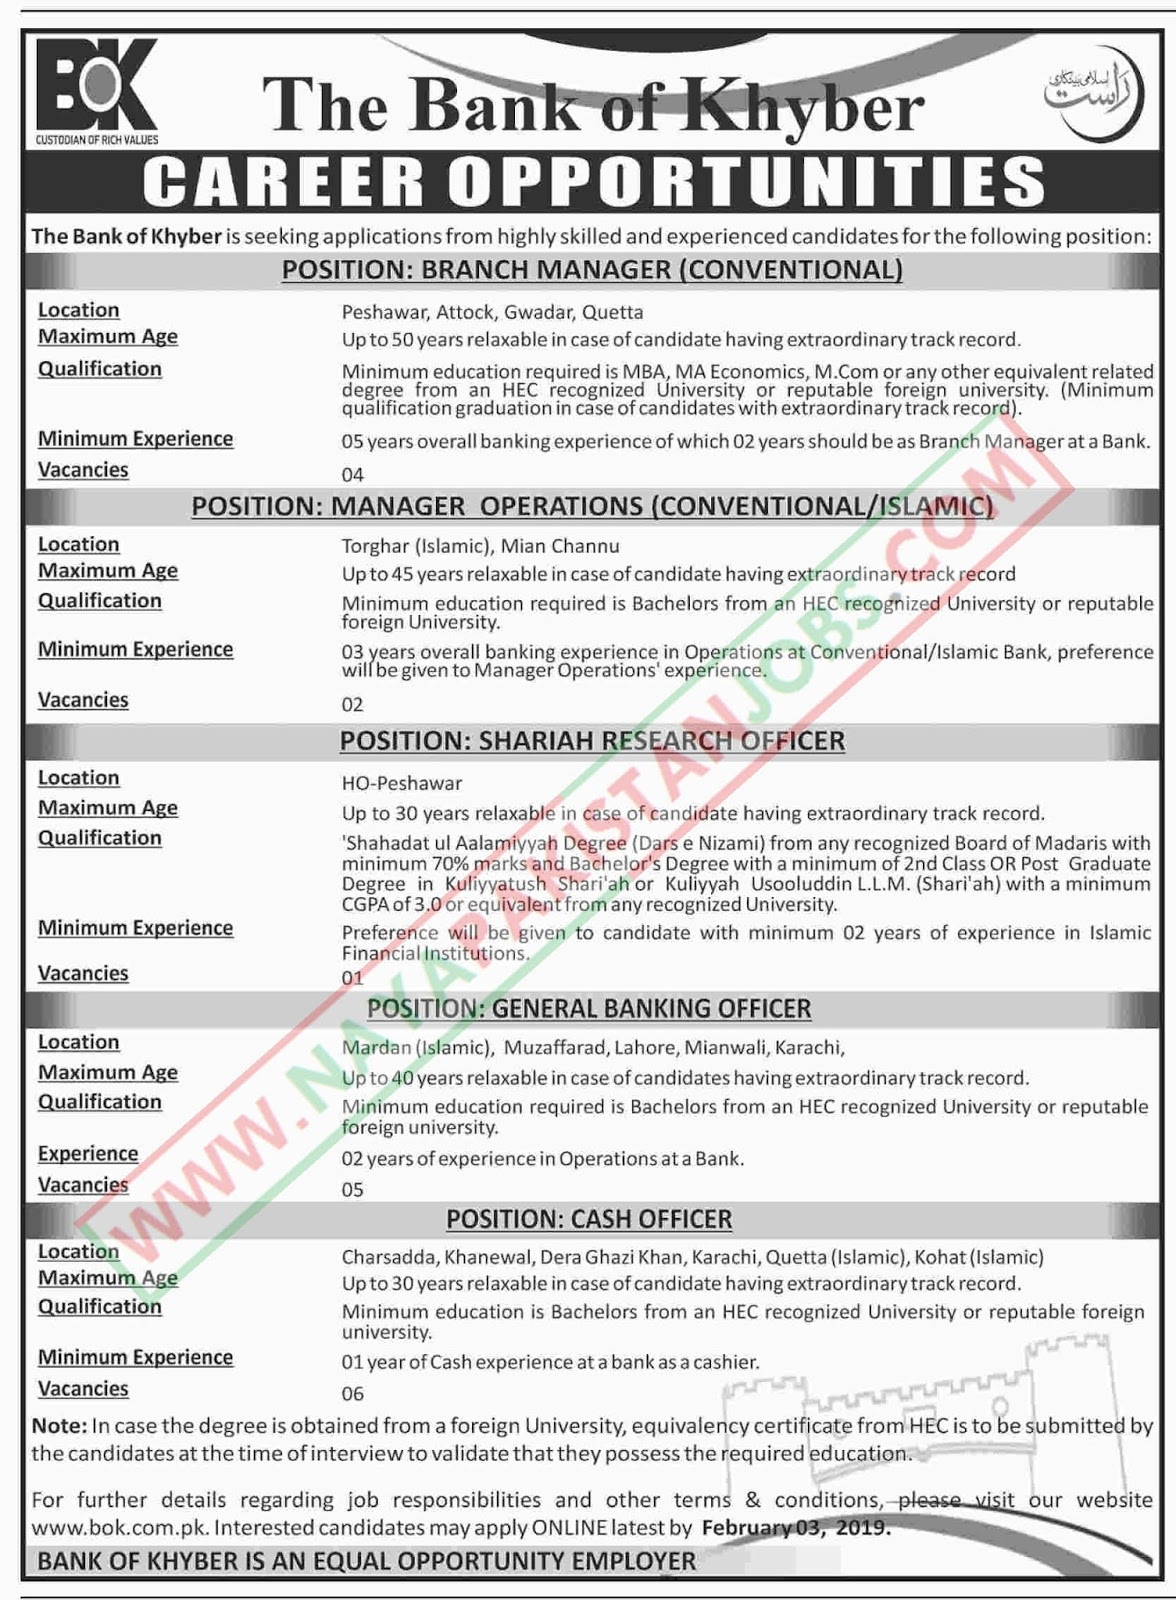 The Bank Of Khyber Jobs, The Bank Of Khyber Jobs Jan 2019 | Cash Officers, Bank of Khyber Jobs 2019 | Cash Officers